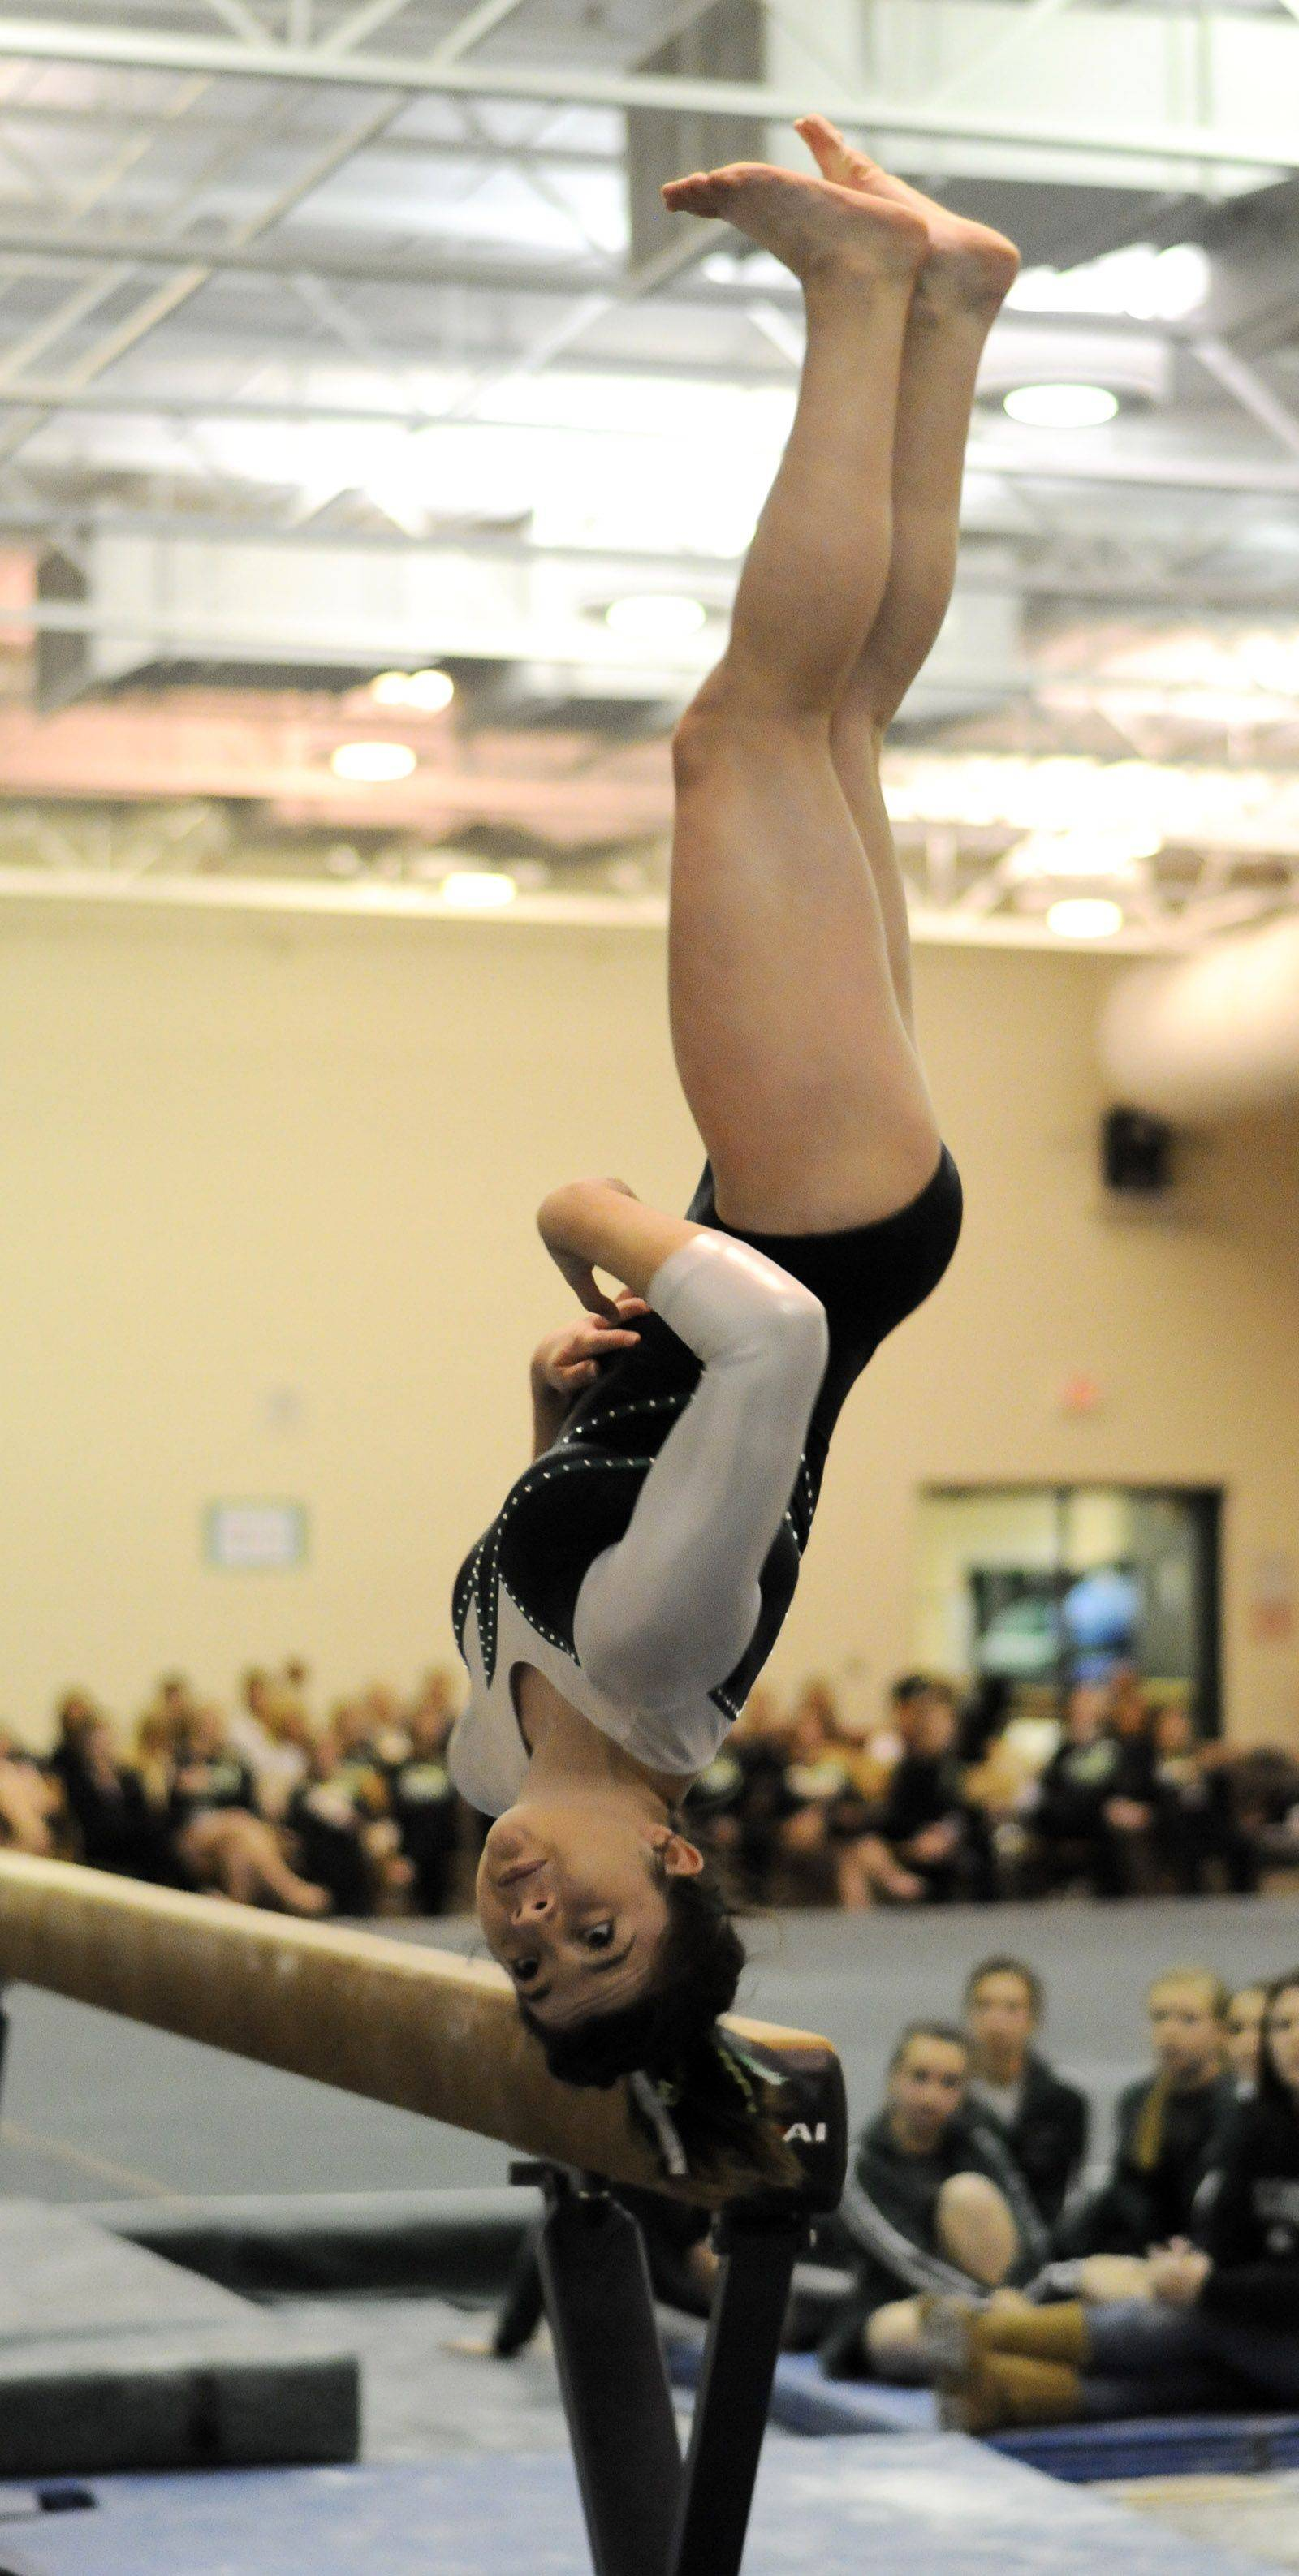 Glenbard West's Missy Guzman dismounts from the balance beam during the York at Glenbard West girls gymnastics meet.